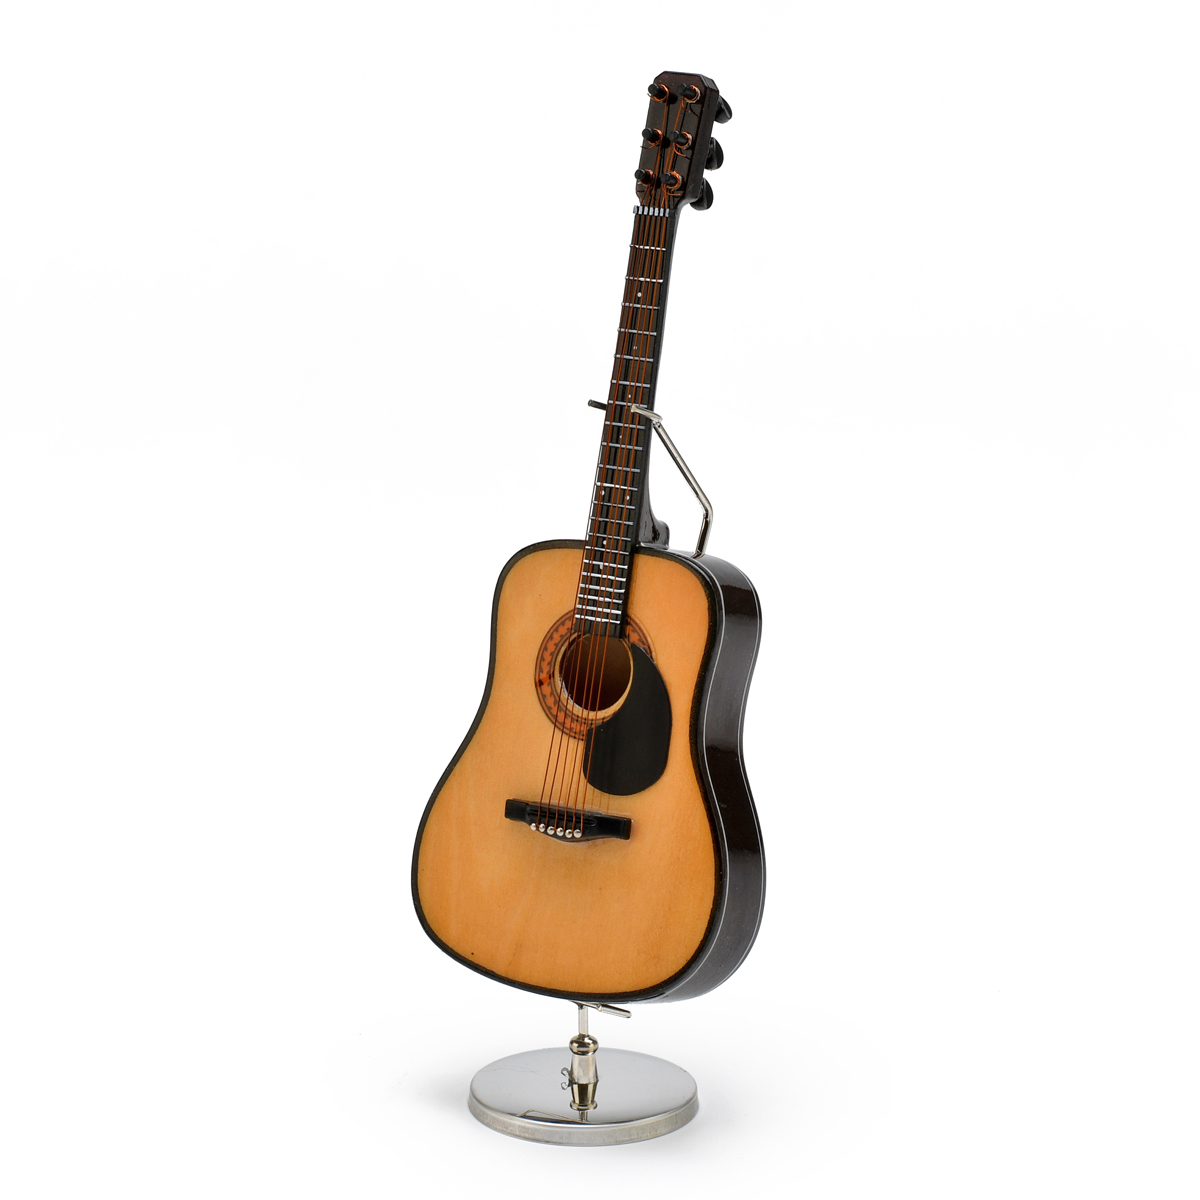 A Miniature Replica of a Classical Acoustic Guitar With Stand and Case